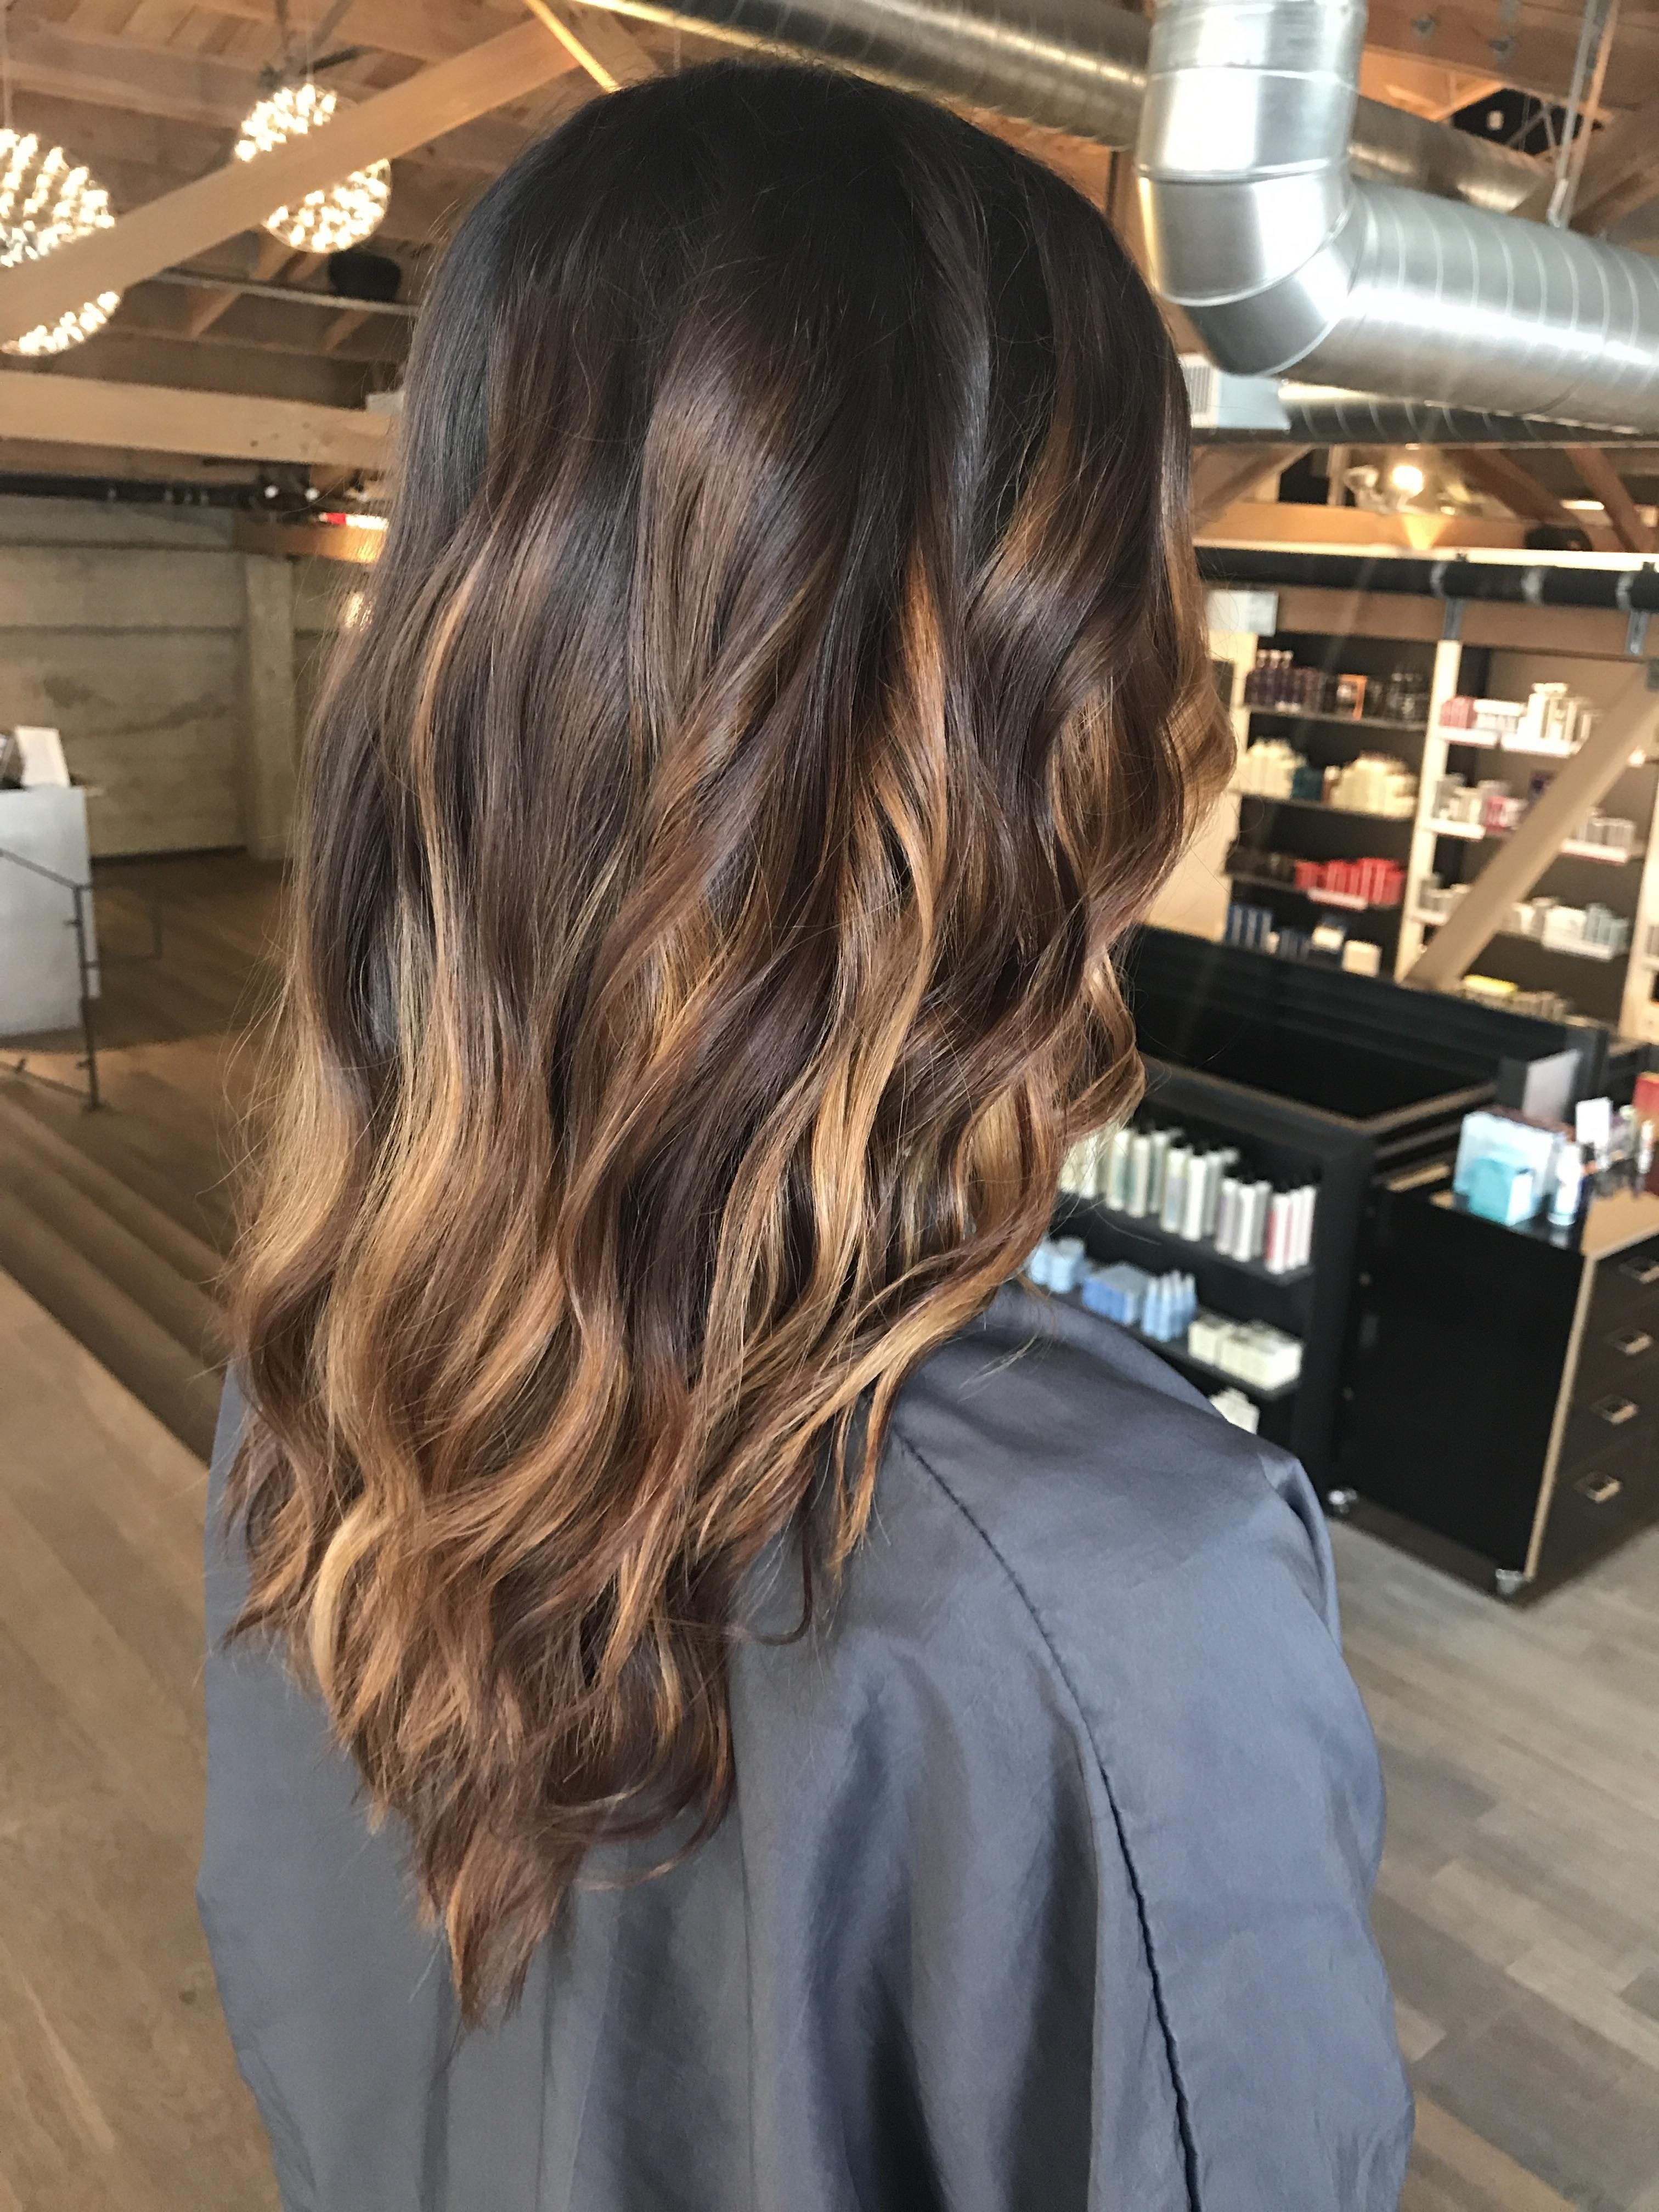 Hi! Just wanted to know, but is it true that conditioner ...